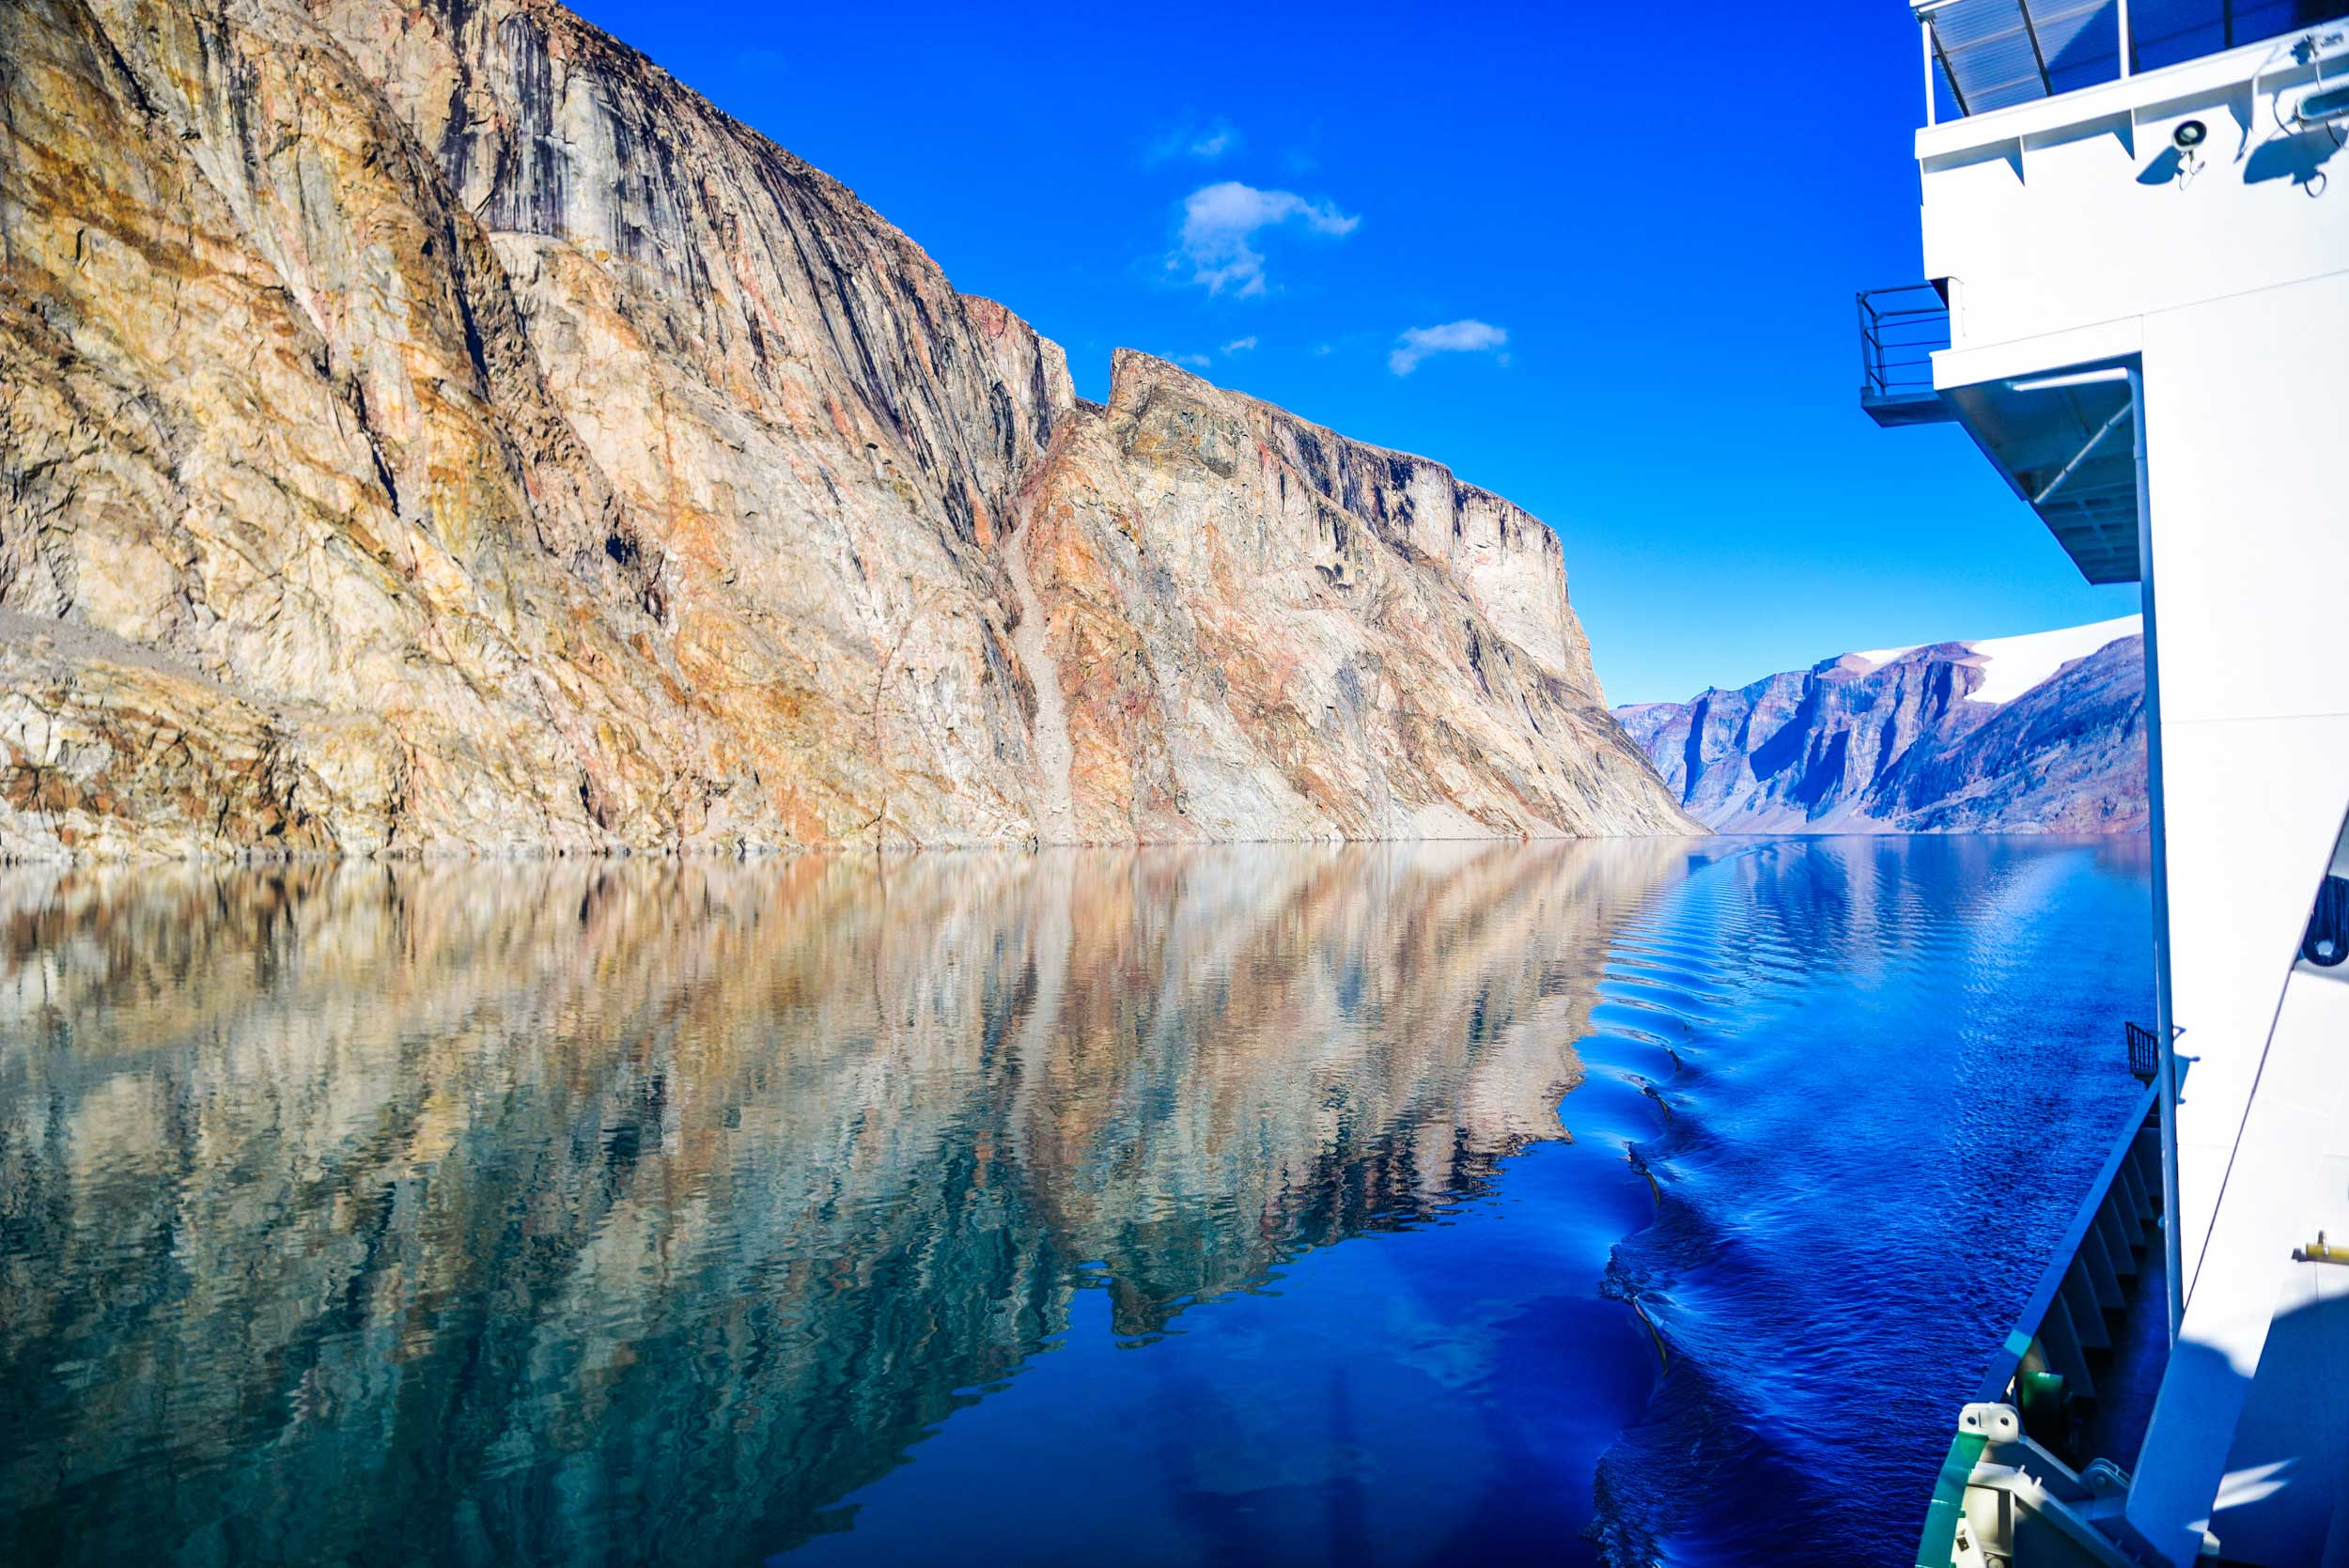 Bright blue water with high brown cliffs either side rflected in the mirror-like water